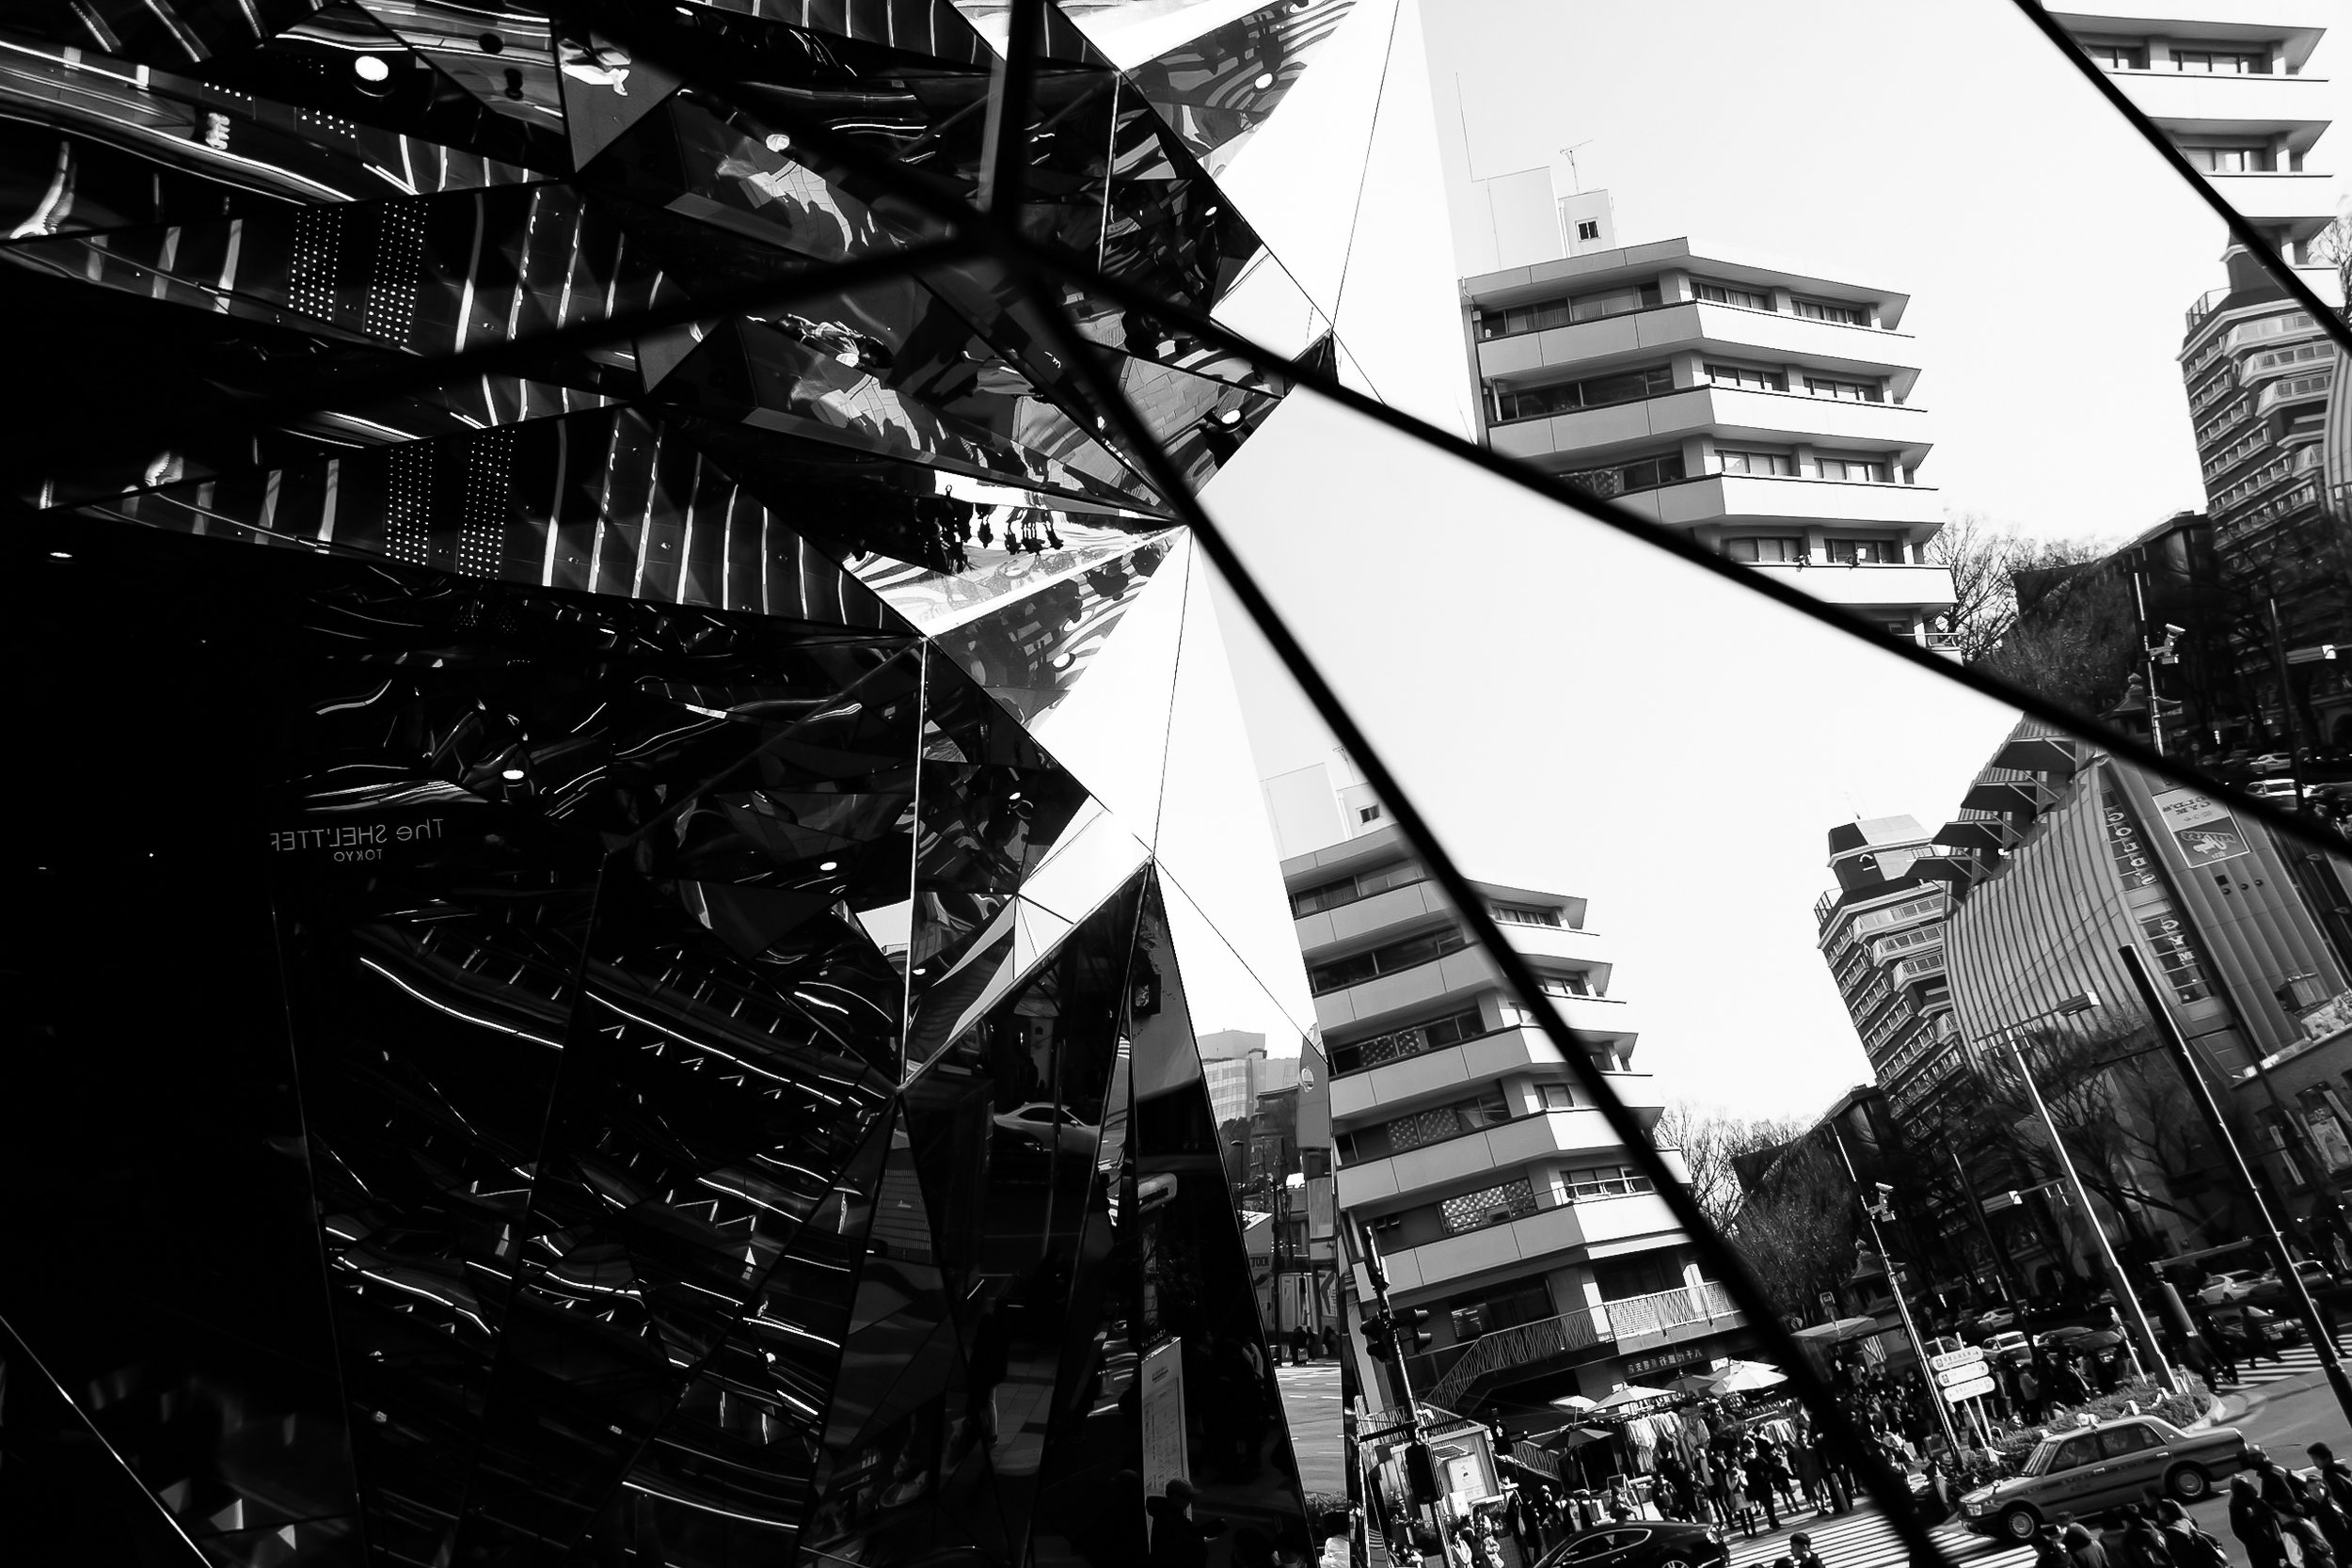 This-End-of-Tokyo-19.jpg